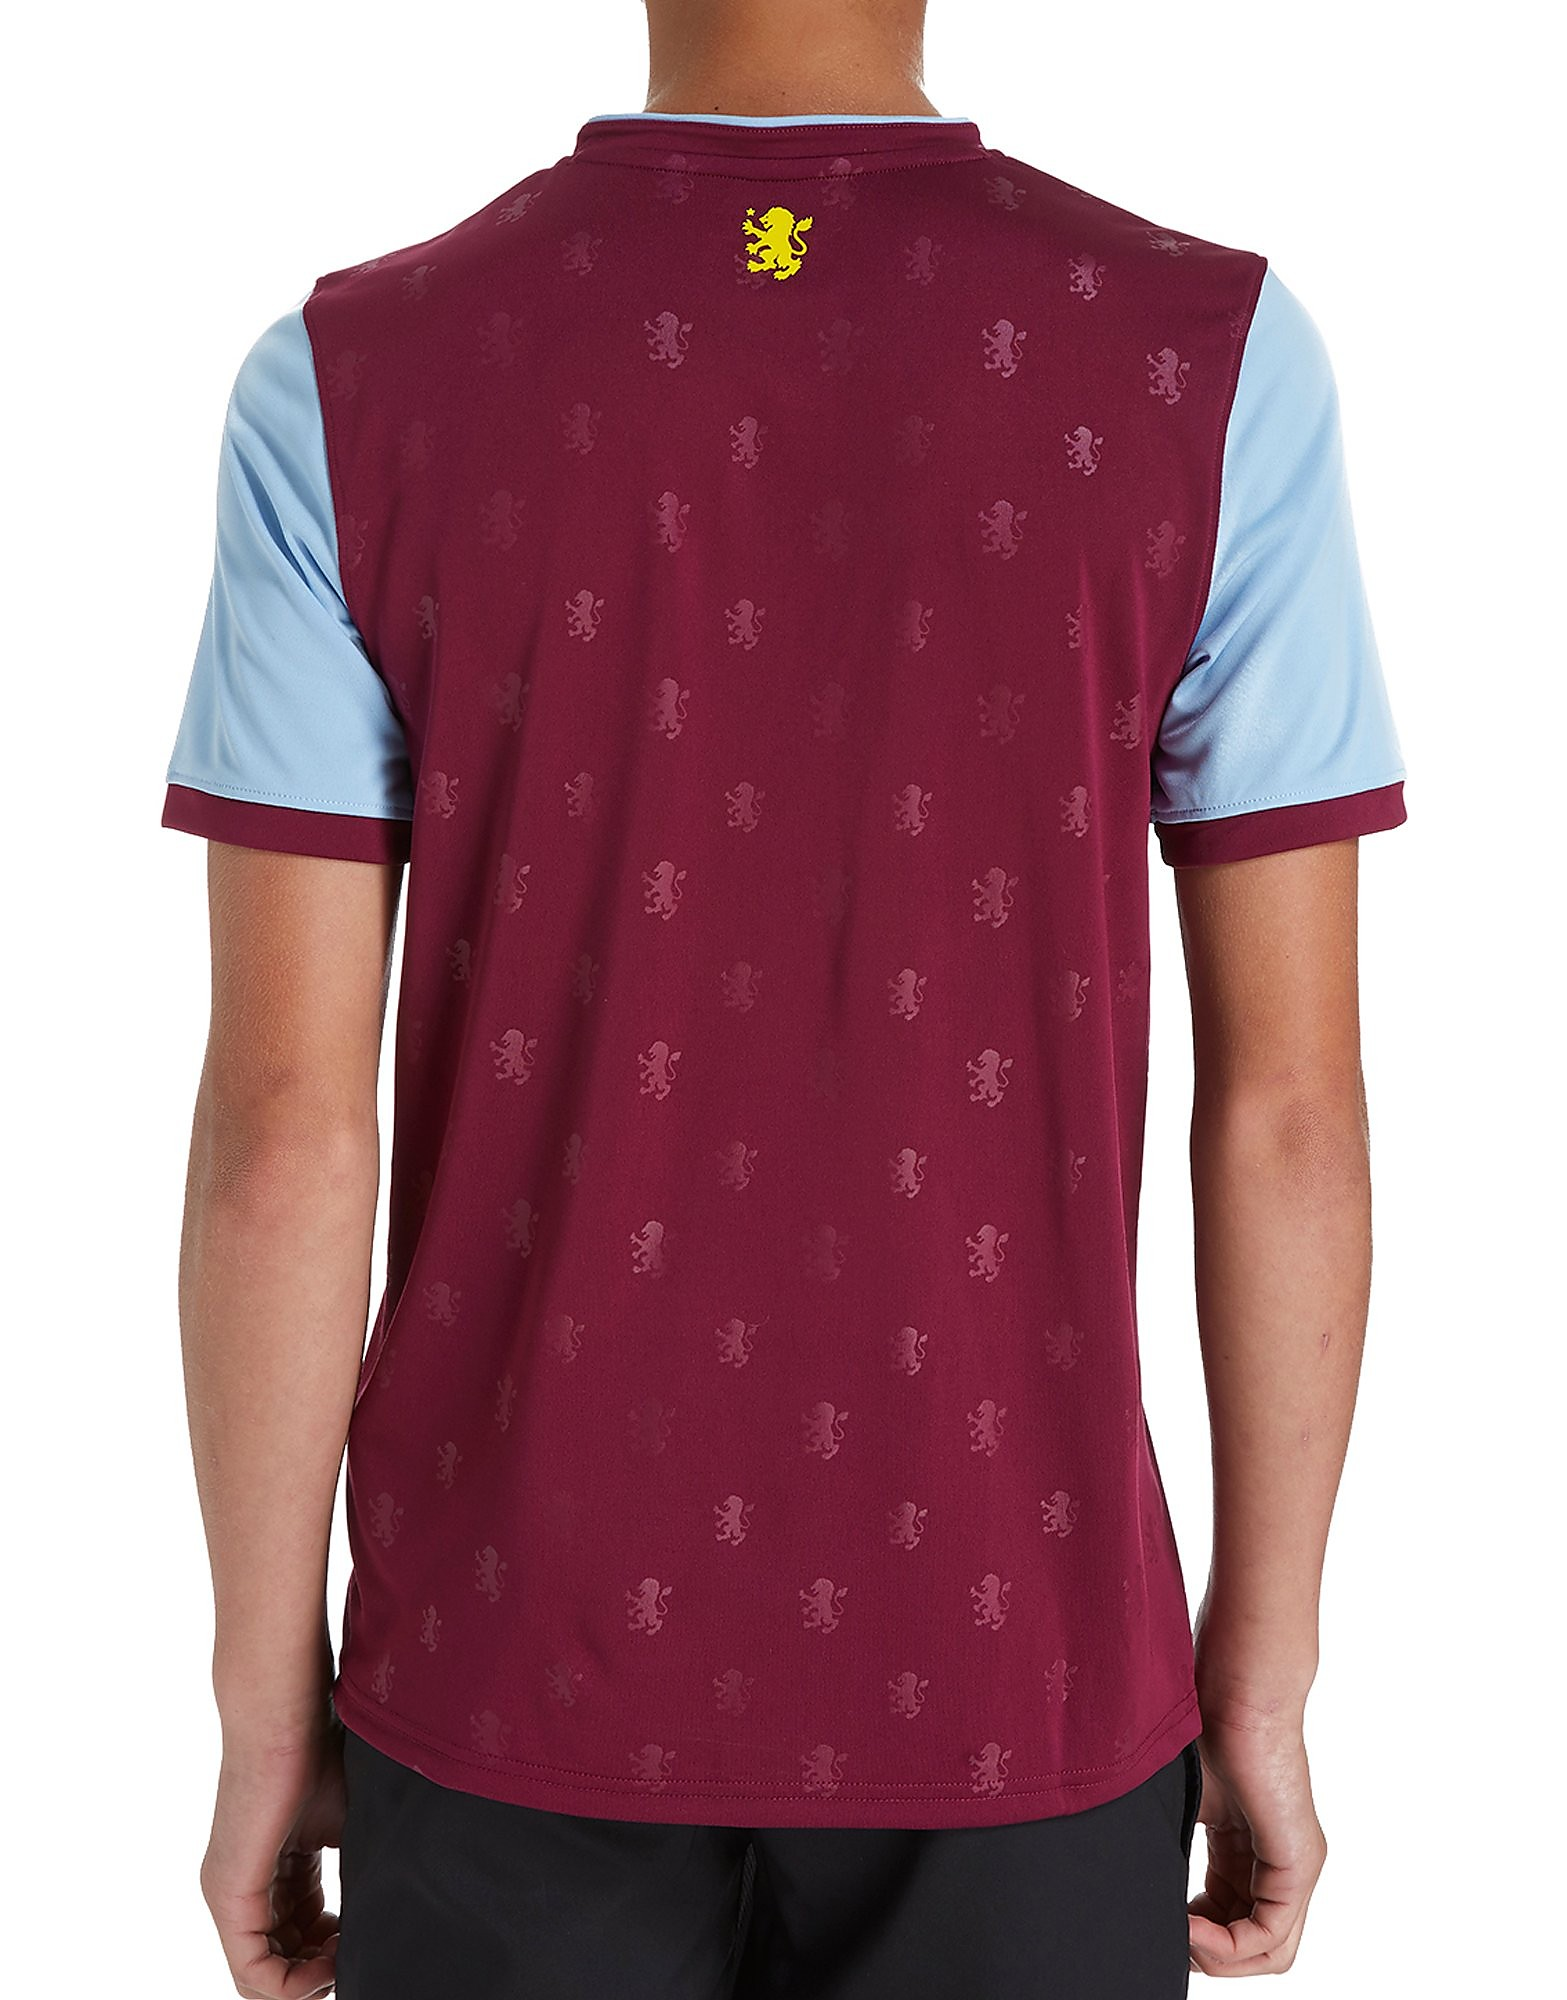 Under Armour camiseta Aston Villa 2017/18 1.ª equipación júnior